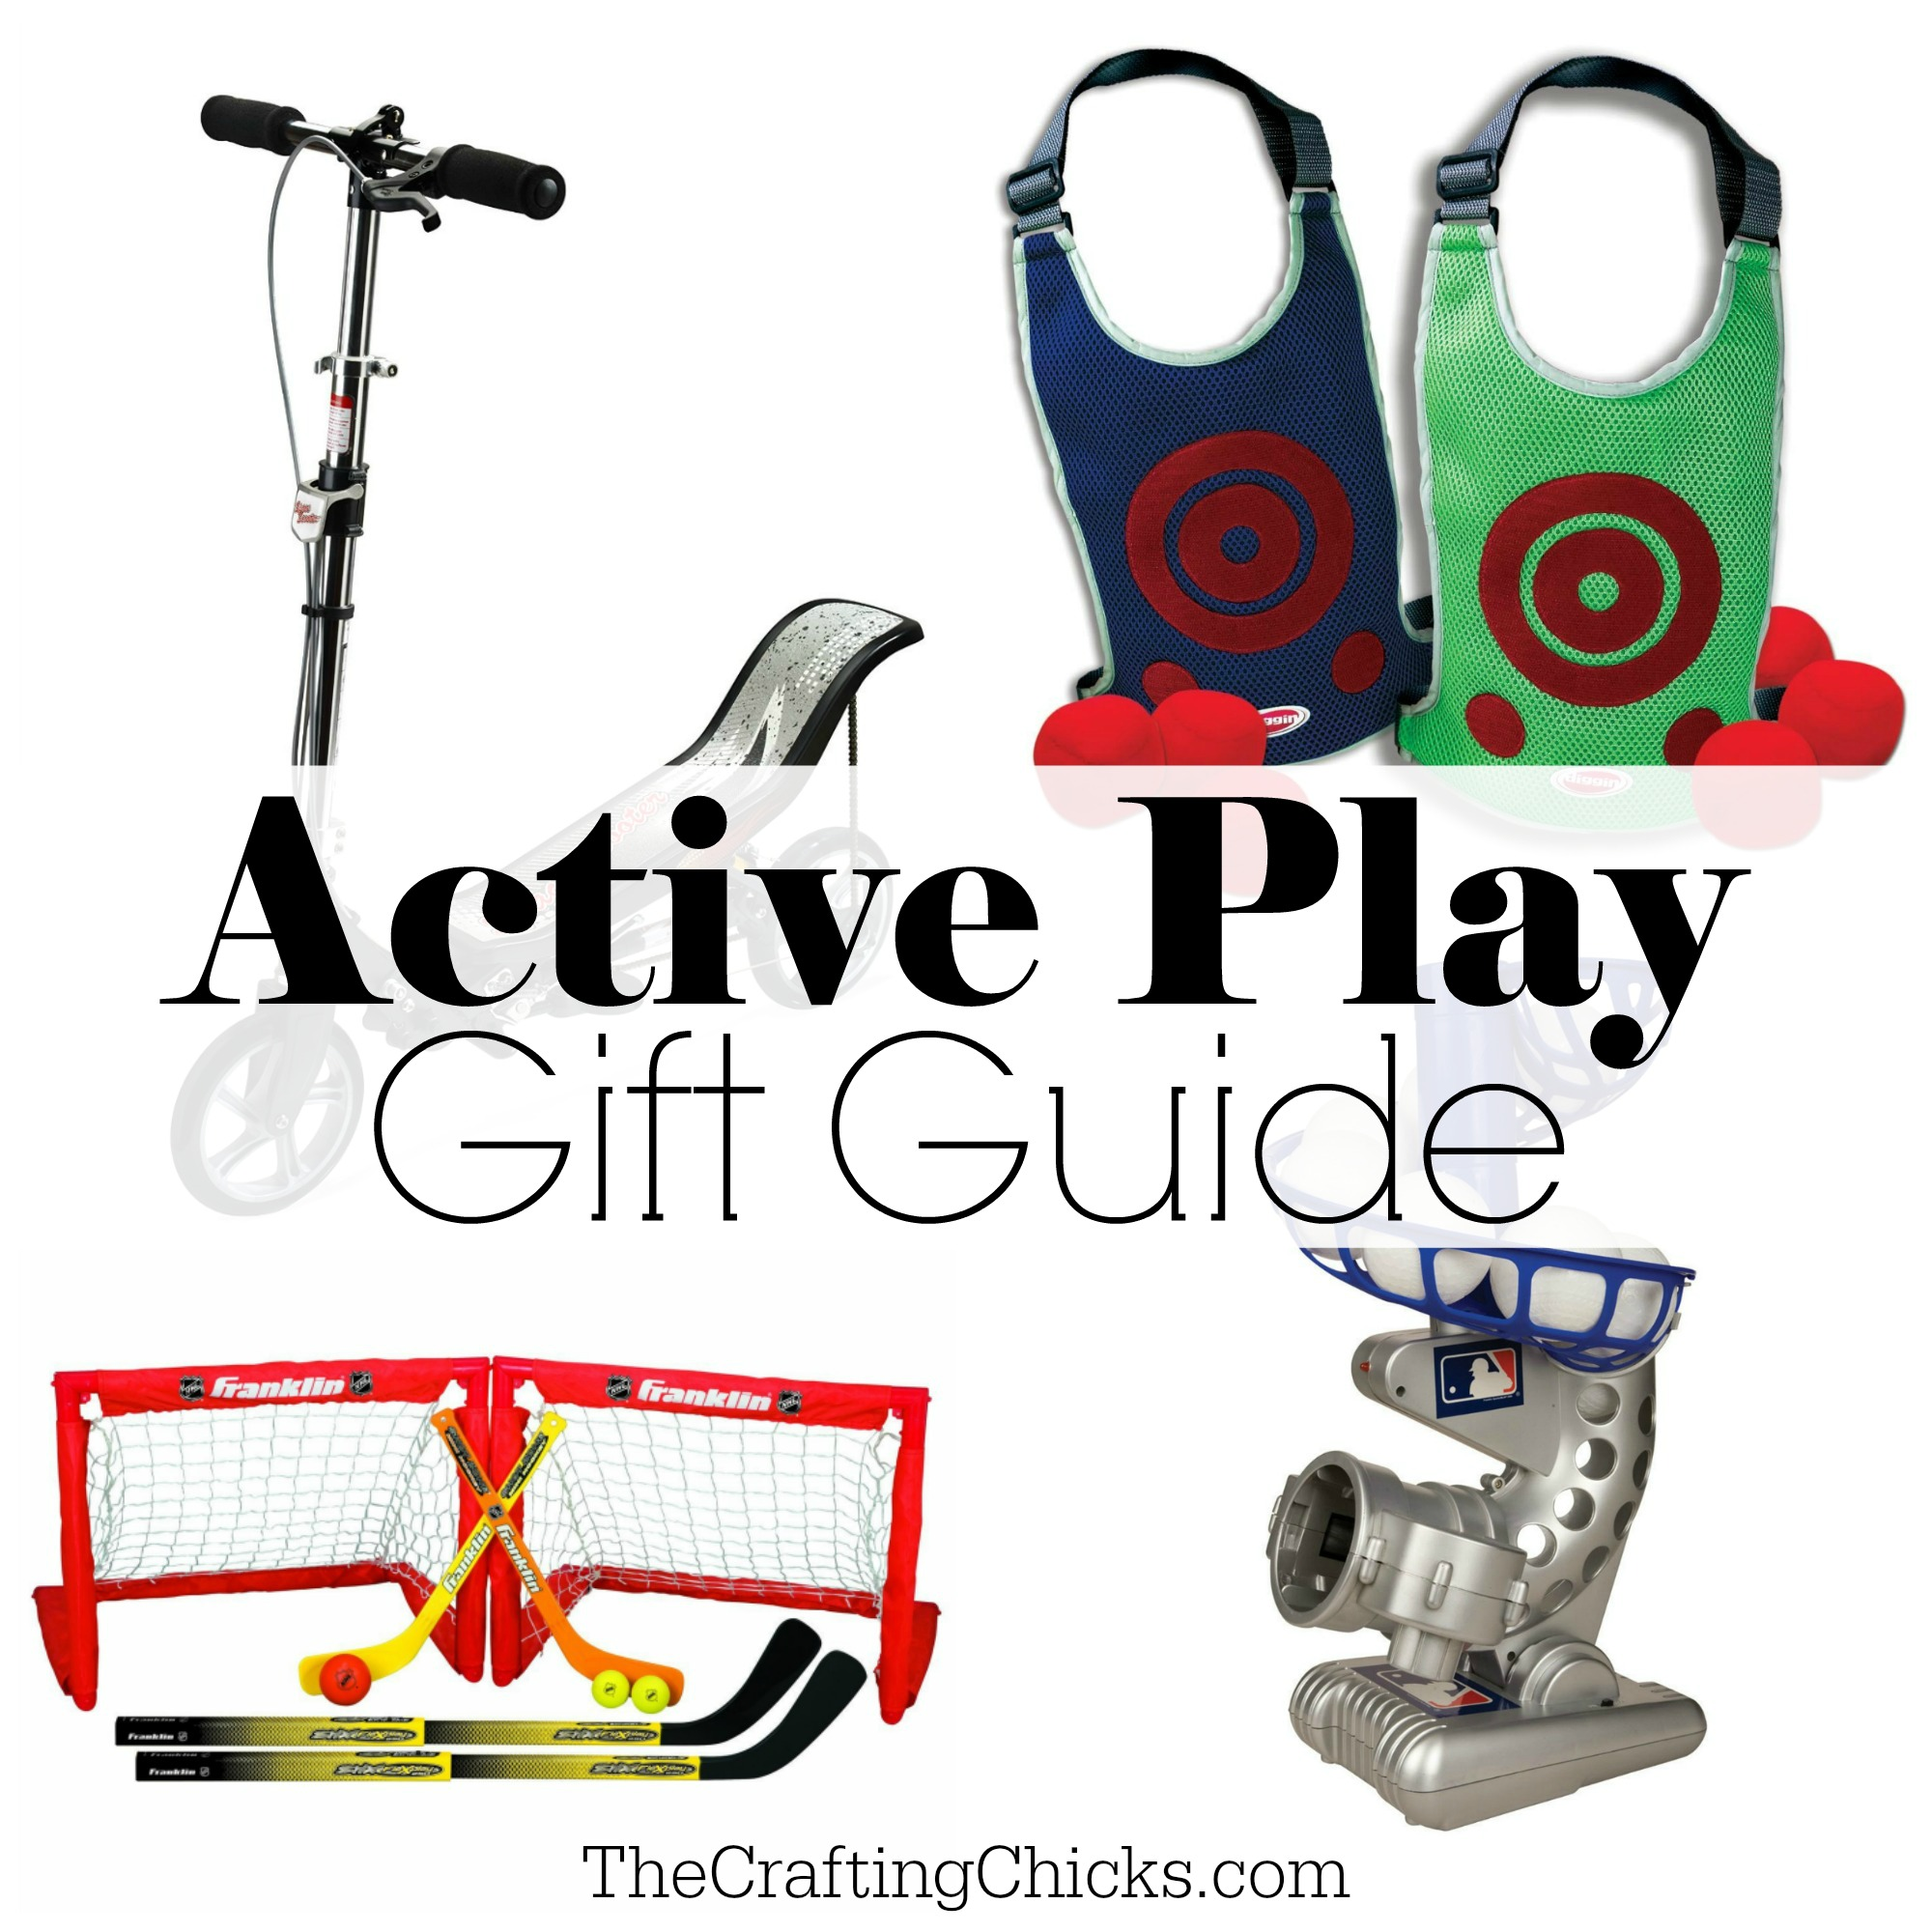 Active Play Gift Guide